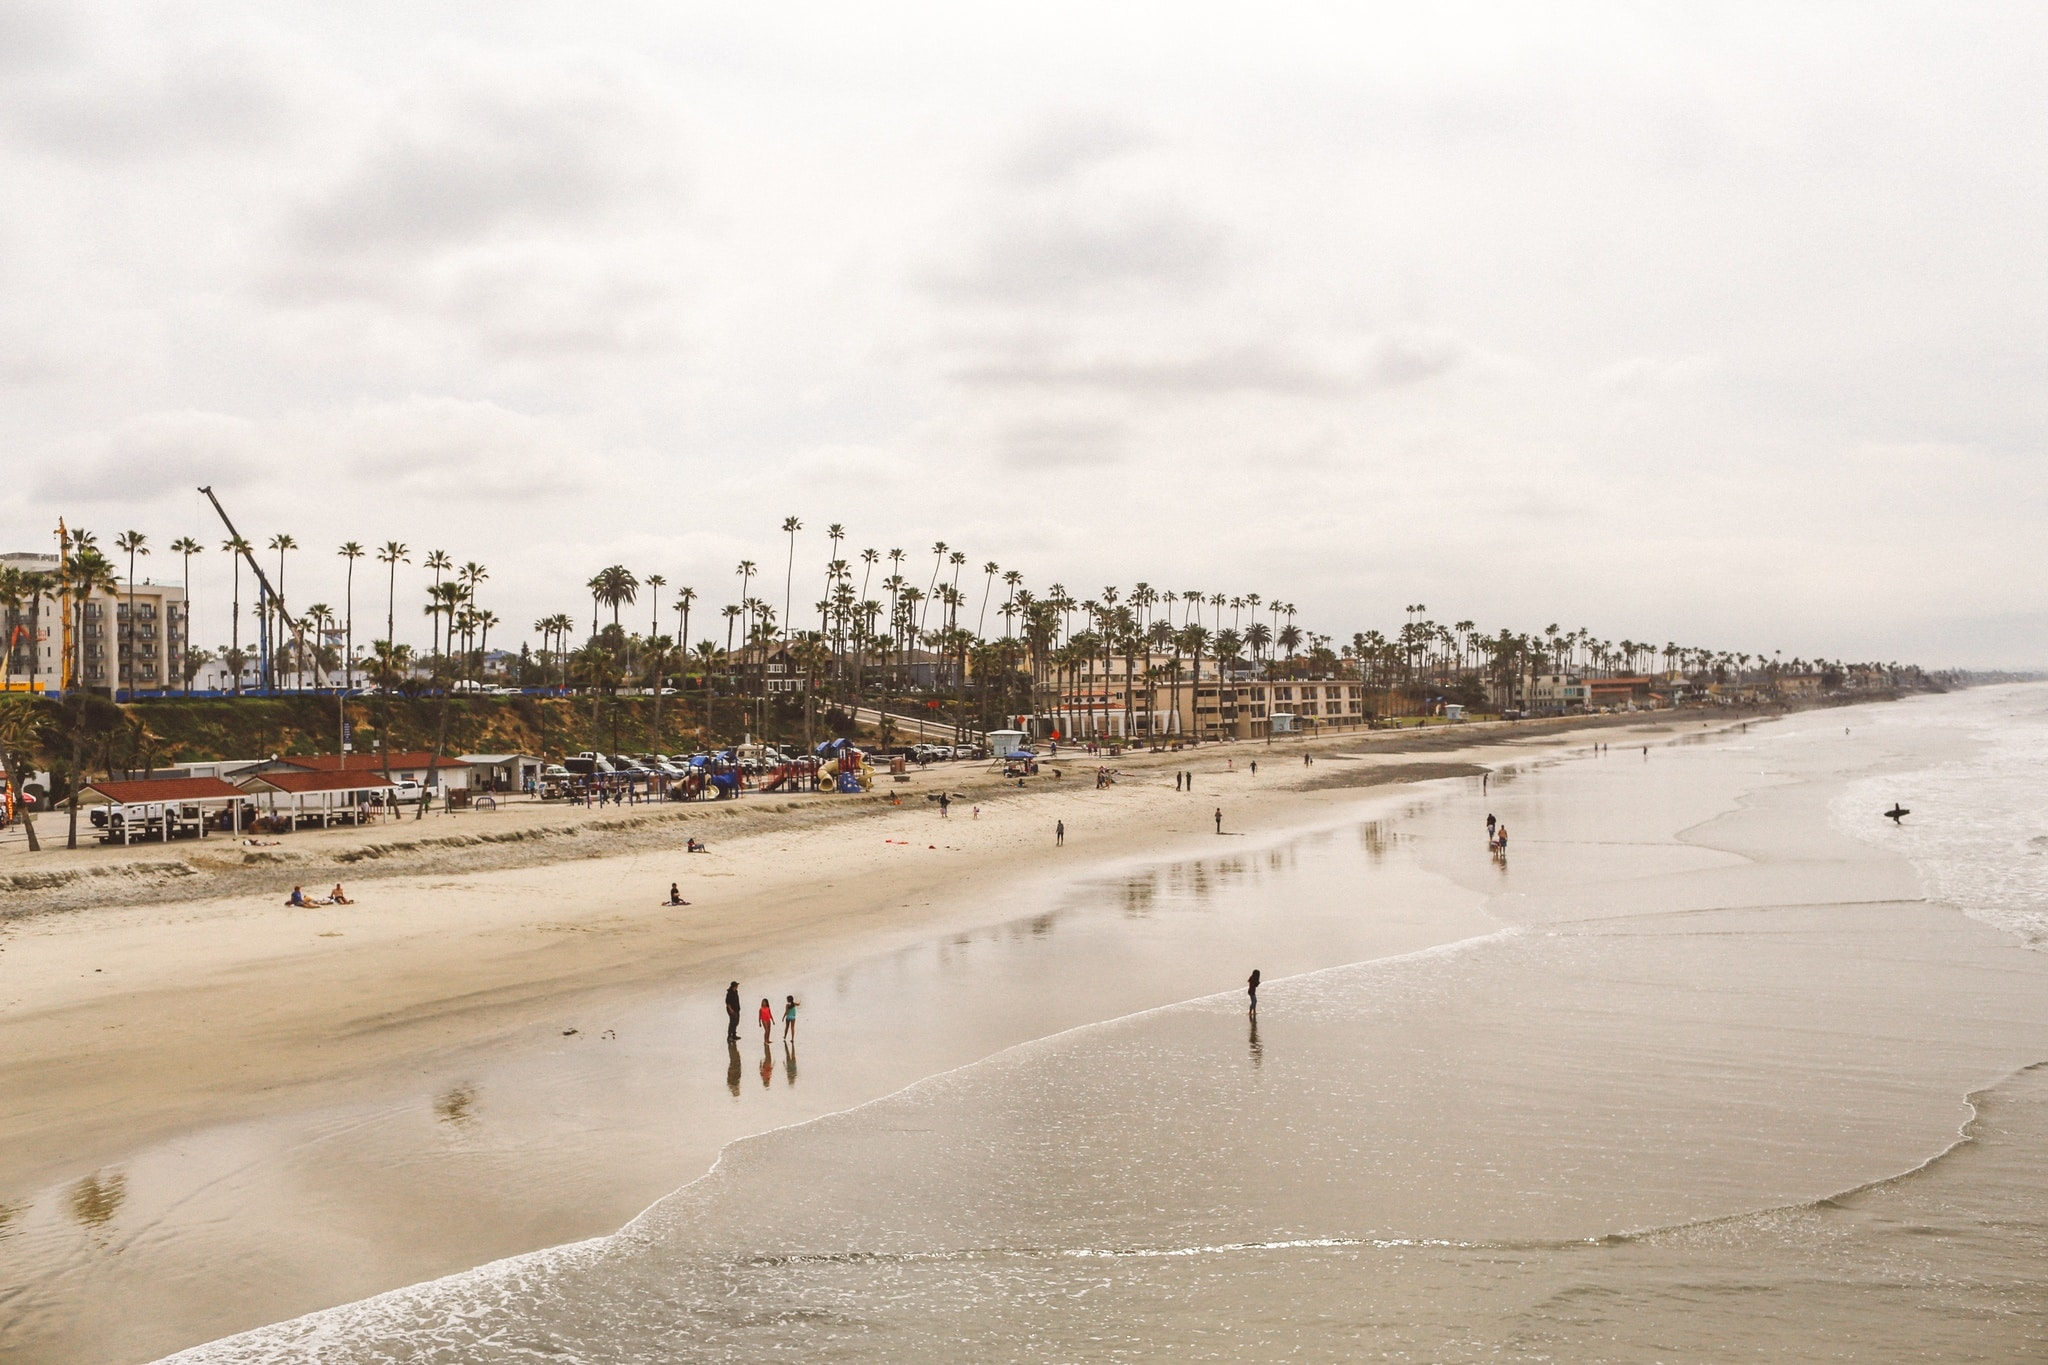 Panoramic view of the beach in Oceanside, Ca